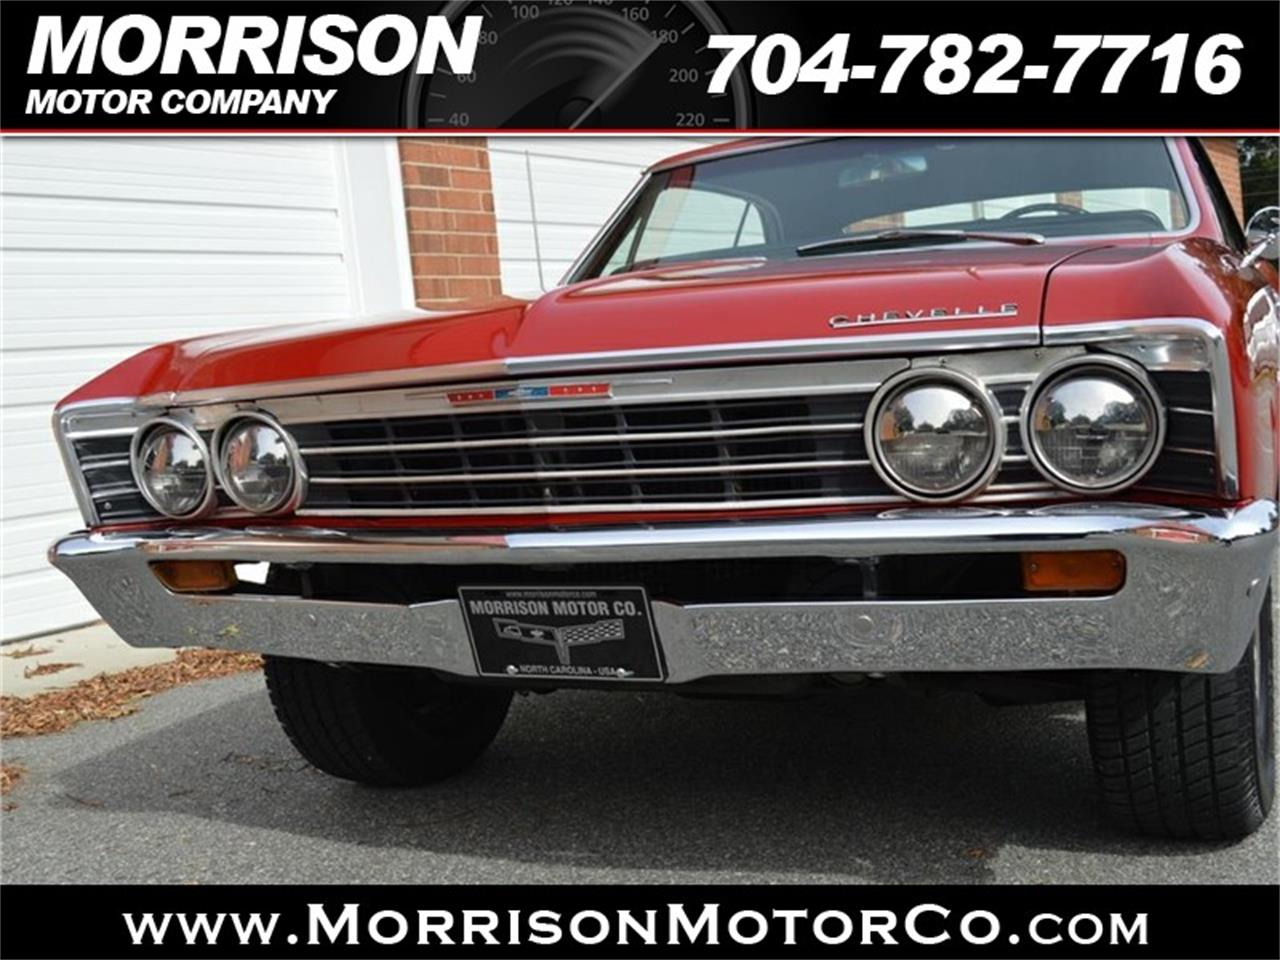 Large Picture of 1967 Chevelle Malibu located in Concord North Carolina - $24,900.00 Offered by Morrison Motor Company - P626